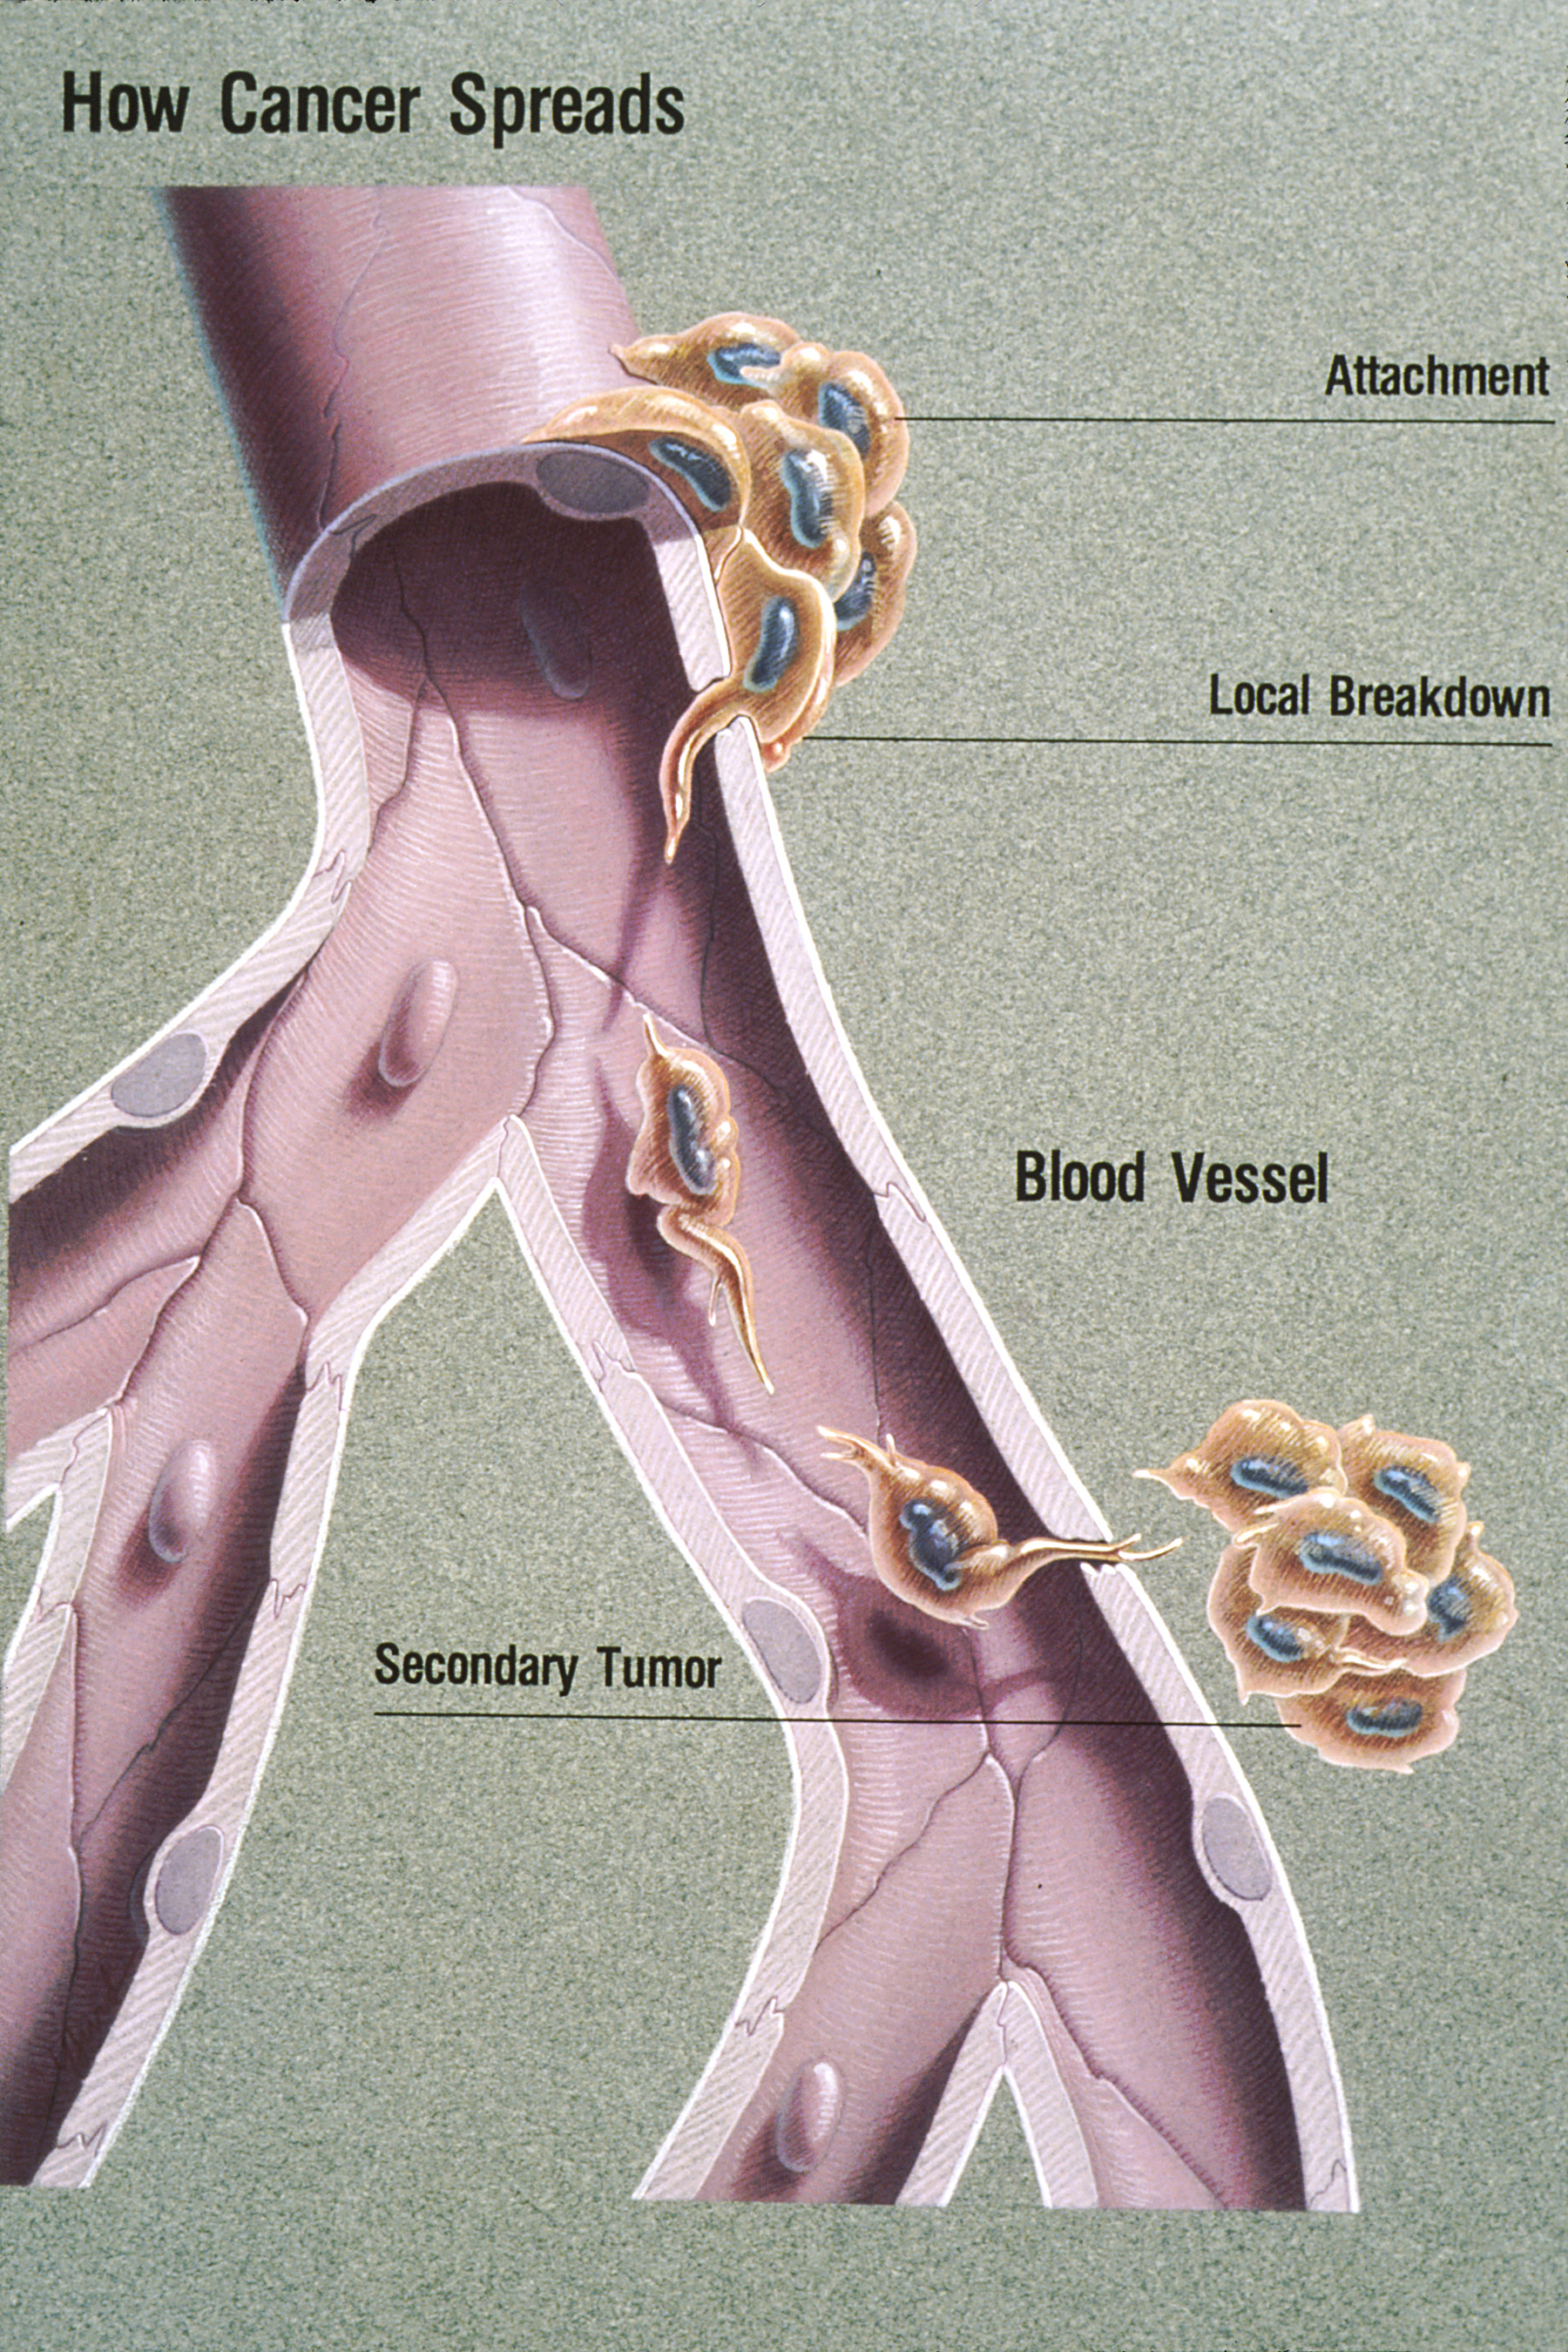 metastatic cancer and blood)